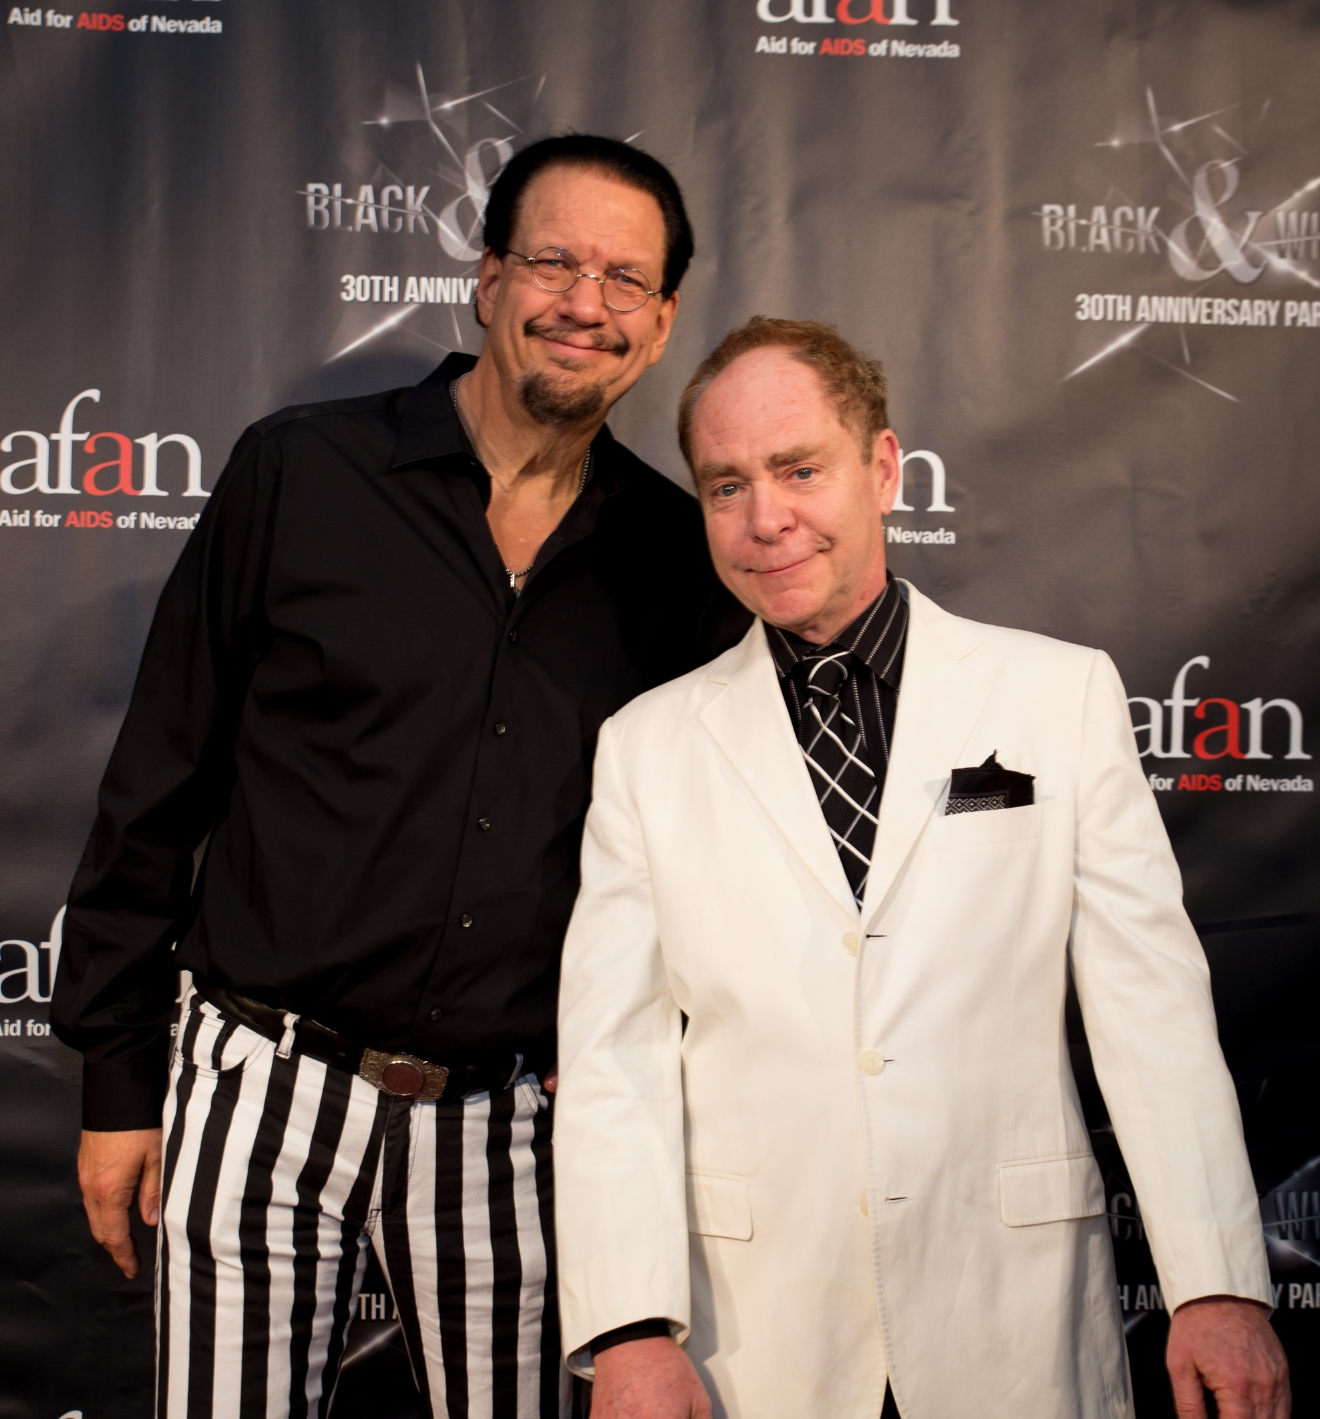 Penn & Teller Discount Tickets. $65 TICKETS START AT. $58 TICKETS START AT. Las Vegas Show Discounts More. The difference between Penn and Teller's show and every other magician on the Las Vegas Strip is that this talented duo likes to bring the audience in on their magic secrets, or so they would like you to think!.